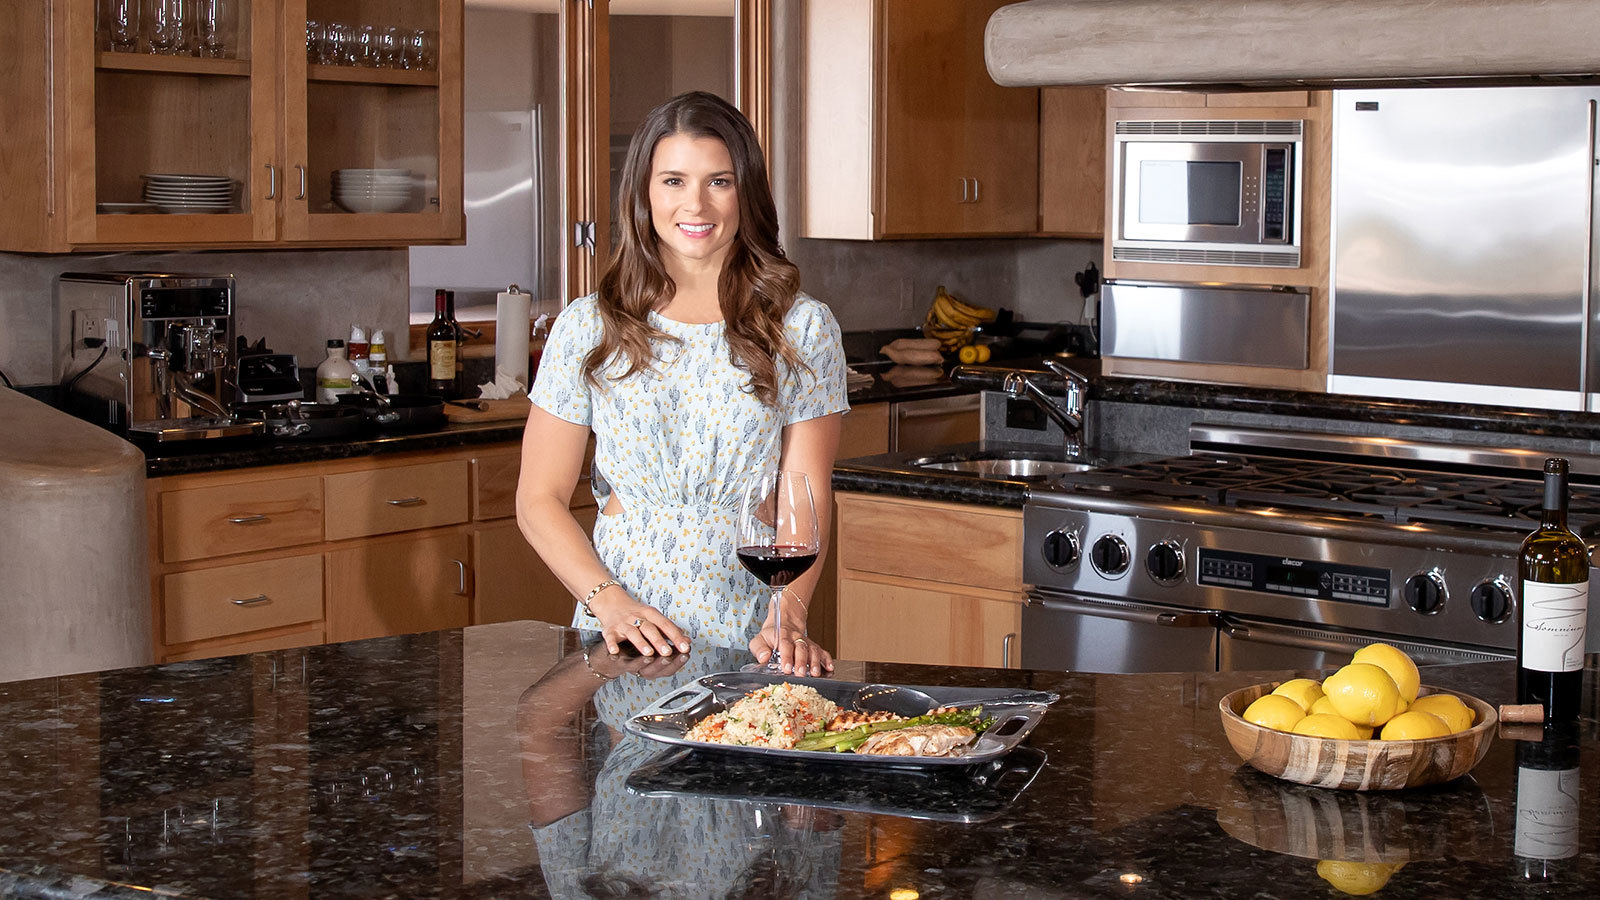 Wine & Design: Racing Home With Danica Patrick photo